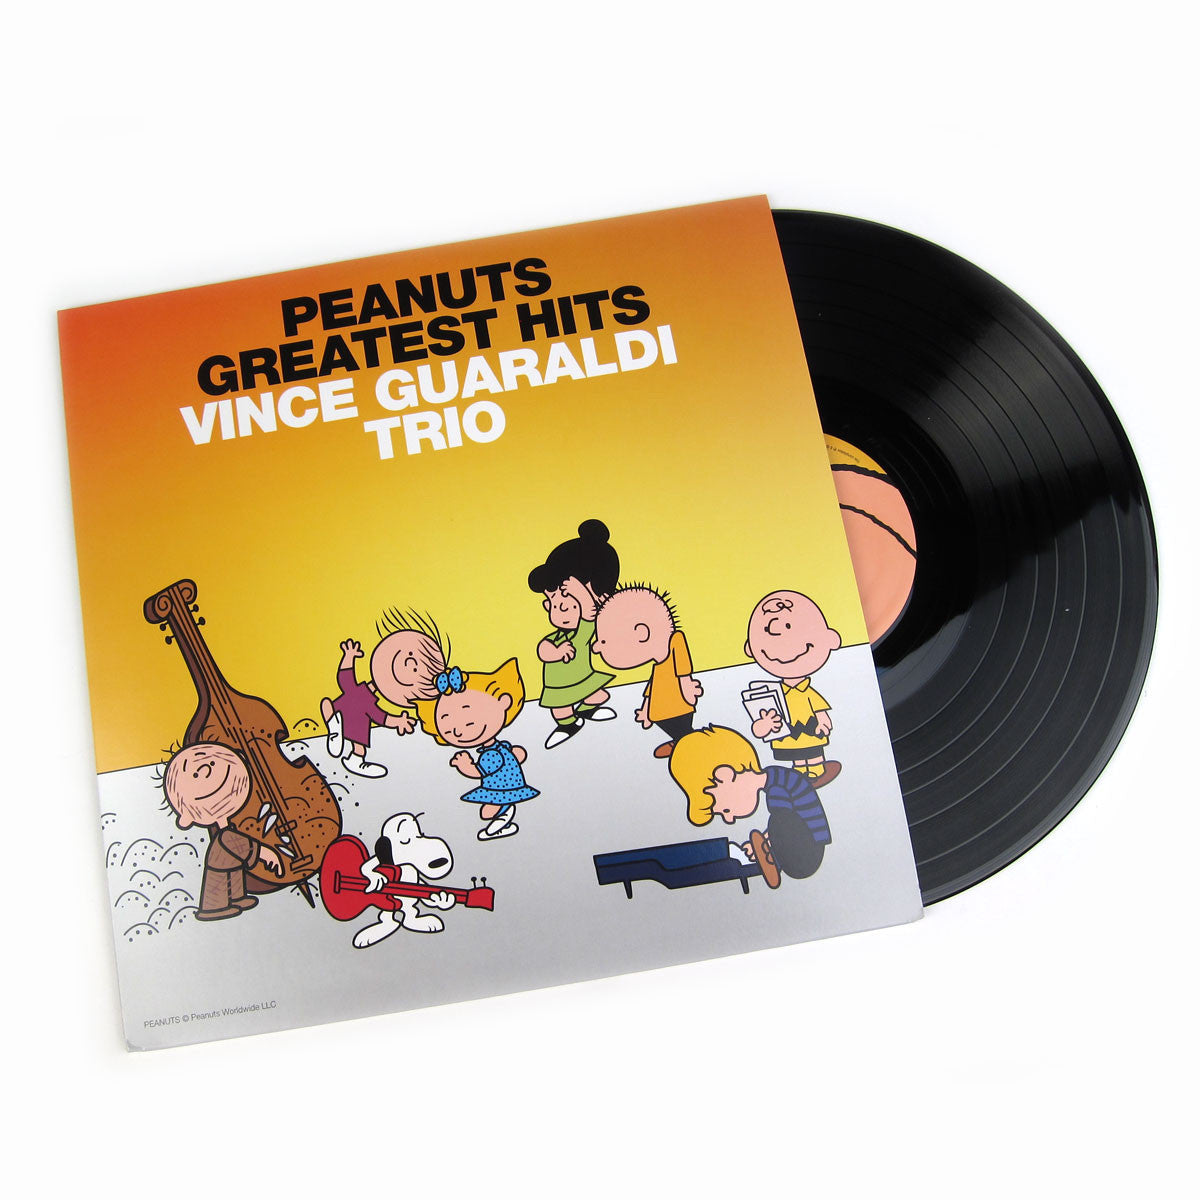 Vince Guaraldi Trio: Peanuts Greatest Hits Vinyl LP